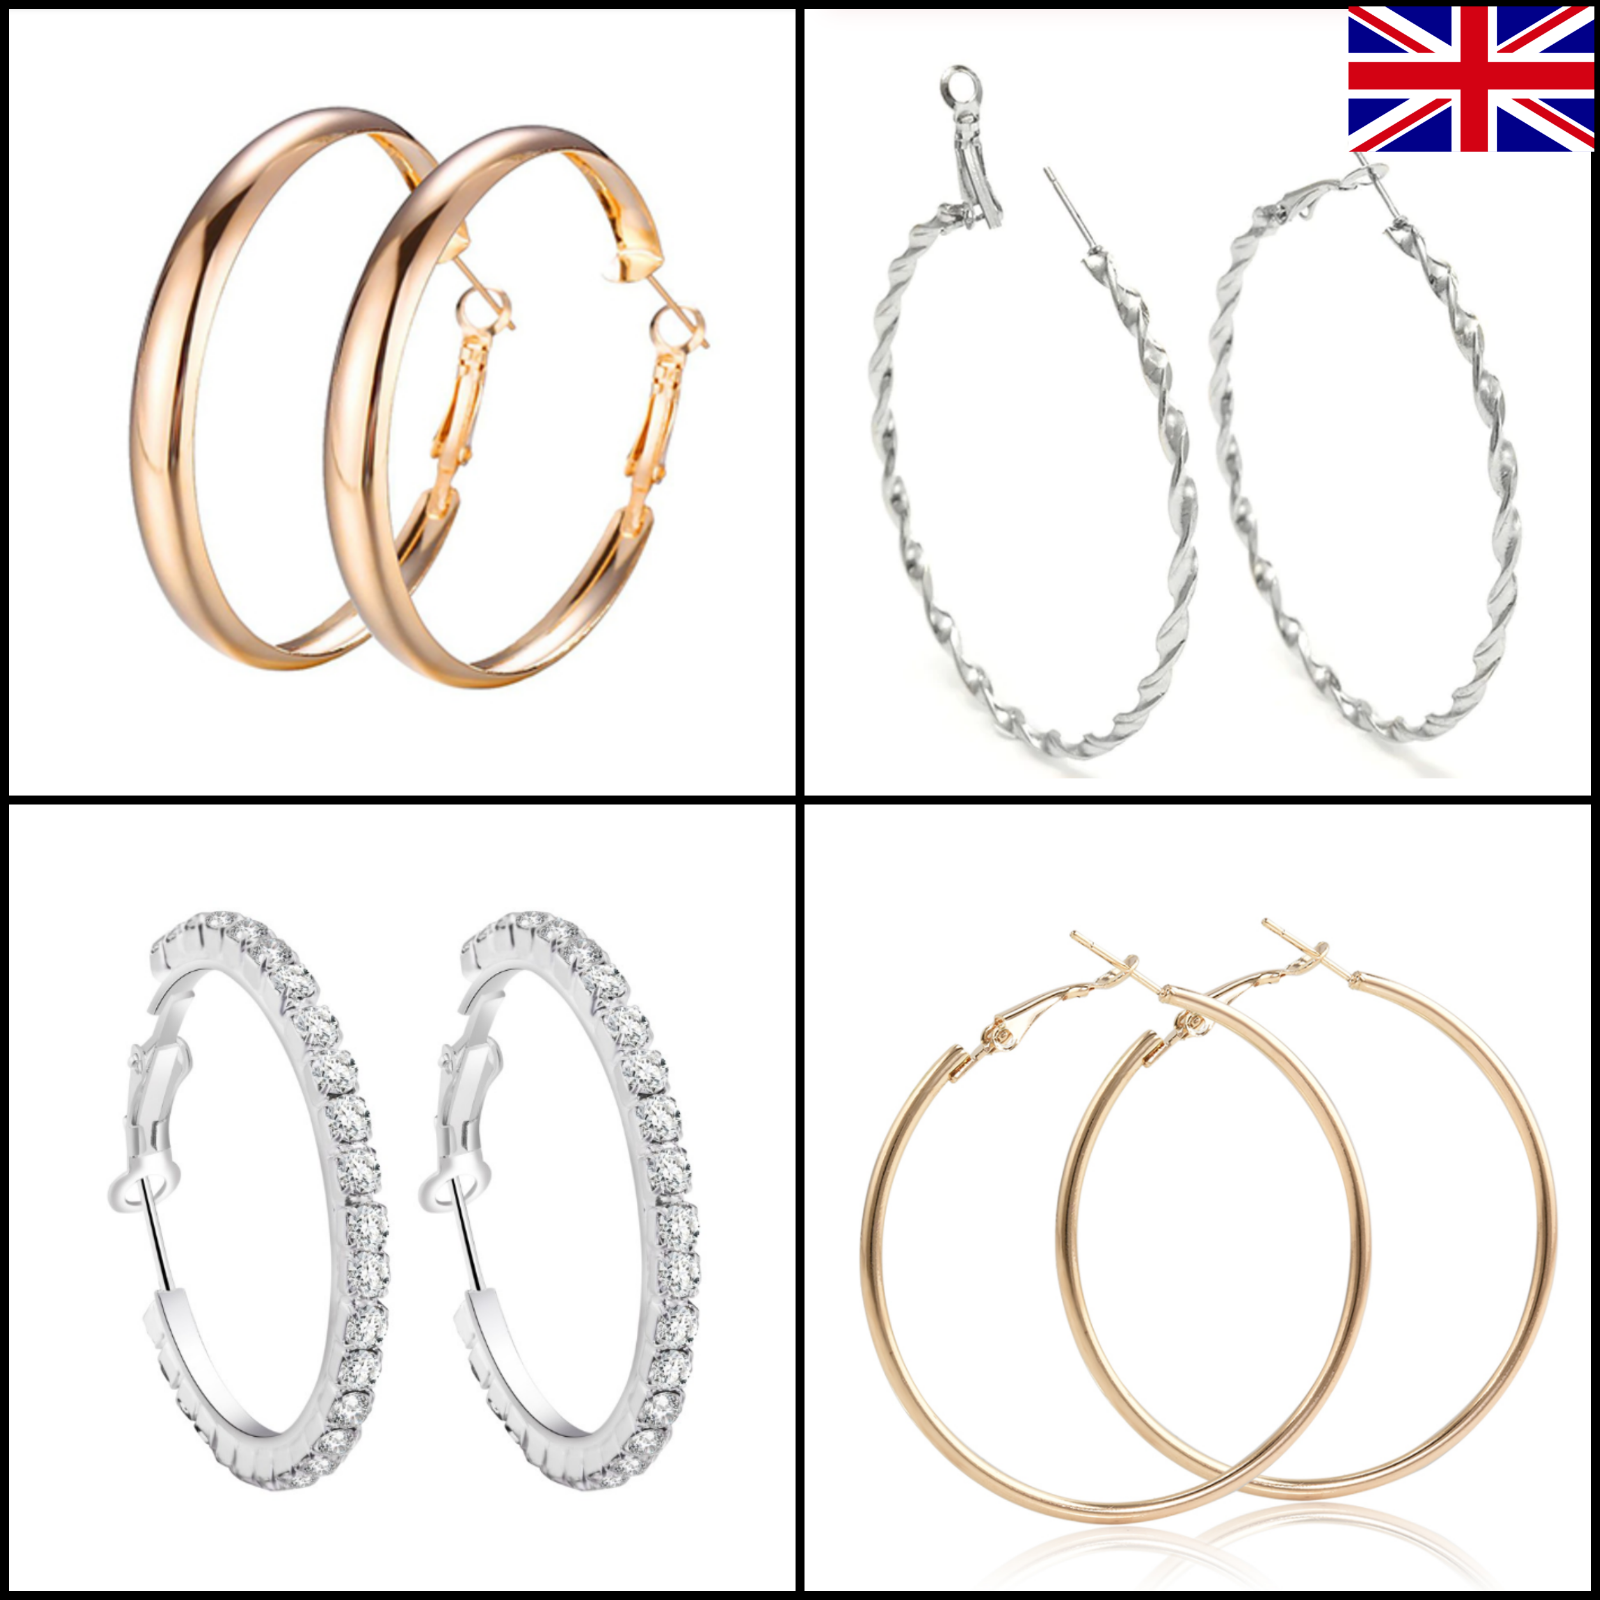 Jewellery - ✨Hoop Earrings Round Large Small Big Fashion Jewellery UK SELLER Gold Silver ✨